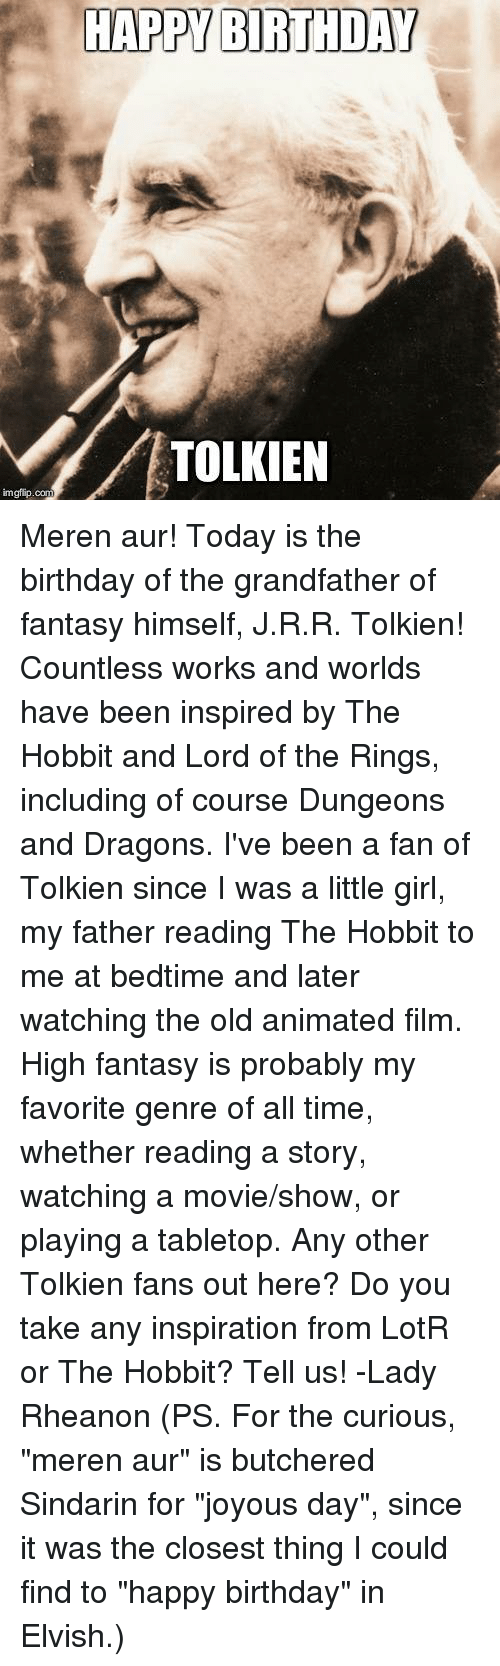 """Memes, The Ring, and Happy Birthday: HAPPY BIRTHDAY  TOLKIEN  imgflip.com Meren aur! Today is the birthday of the grandfather of fantasy himself, J.R.R. Tolkien! Countless works and worlds have been inspired by The Hobbit and Lord of the Rings, including of course Dungeons and Dragons. I've been a fan of Tolkien since I was a little girl, my father reading The Hobbit to me at bedtime and later watching the old animated film. High fantasy is probably my favorite genre of all time, whether reading a story, watching a movie/show, or playing a tabletop.   Any other Tolkien fans out here? Do you take any inspiration from LotR or The Hobbit? Tell us!   -Lady Rheanon   (PS. For the curious, """"meren aur"""" is butchered Sindarin for """"joyous day"""", since it was the closest thing I could find to """"happy birthday"""" in Elvish.)"""